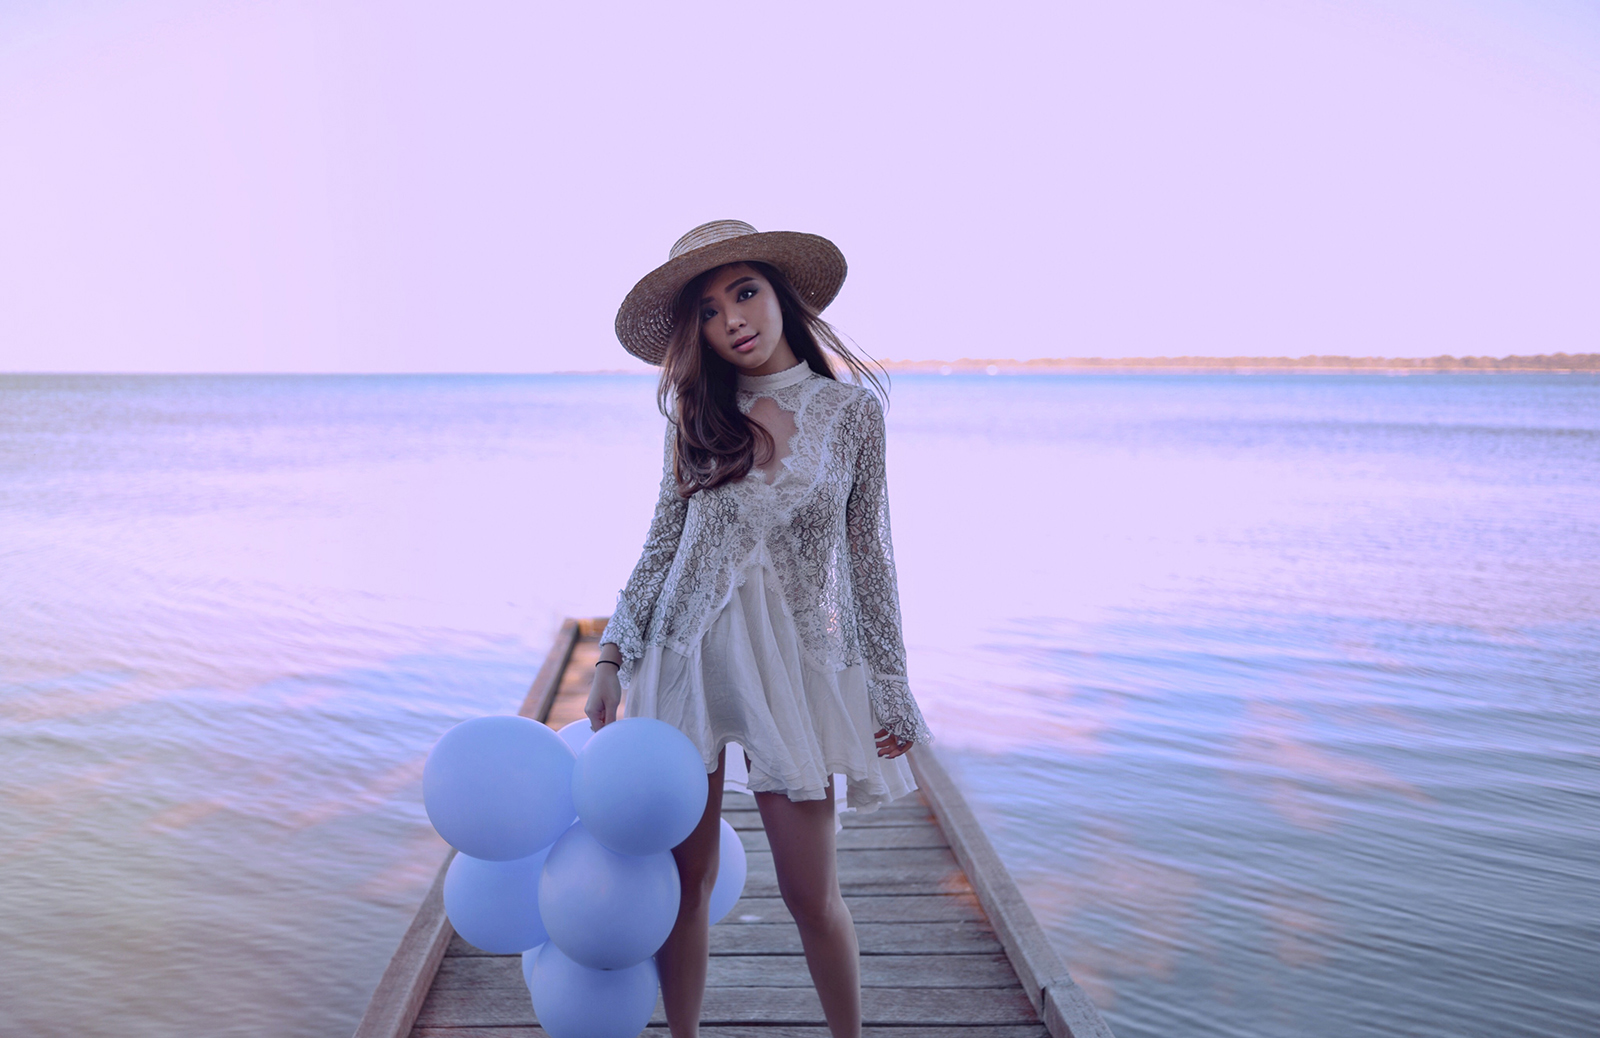 willabelle-ong-paledivision-street-style-fashion-travel-lifestyle-blog-australia-singapore-blogger-perth-lake-pastel-revolve-free-people-new-tell-tale-lace-tunic-balloons